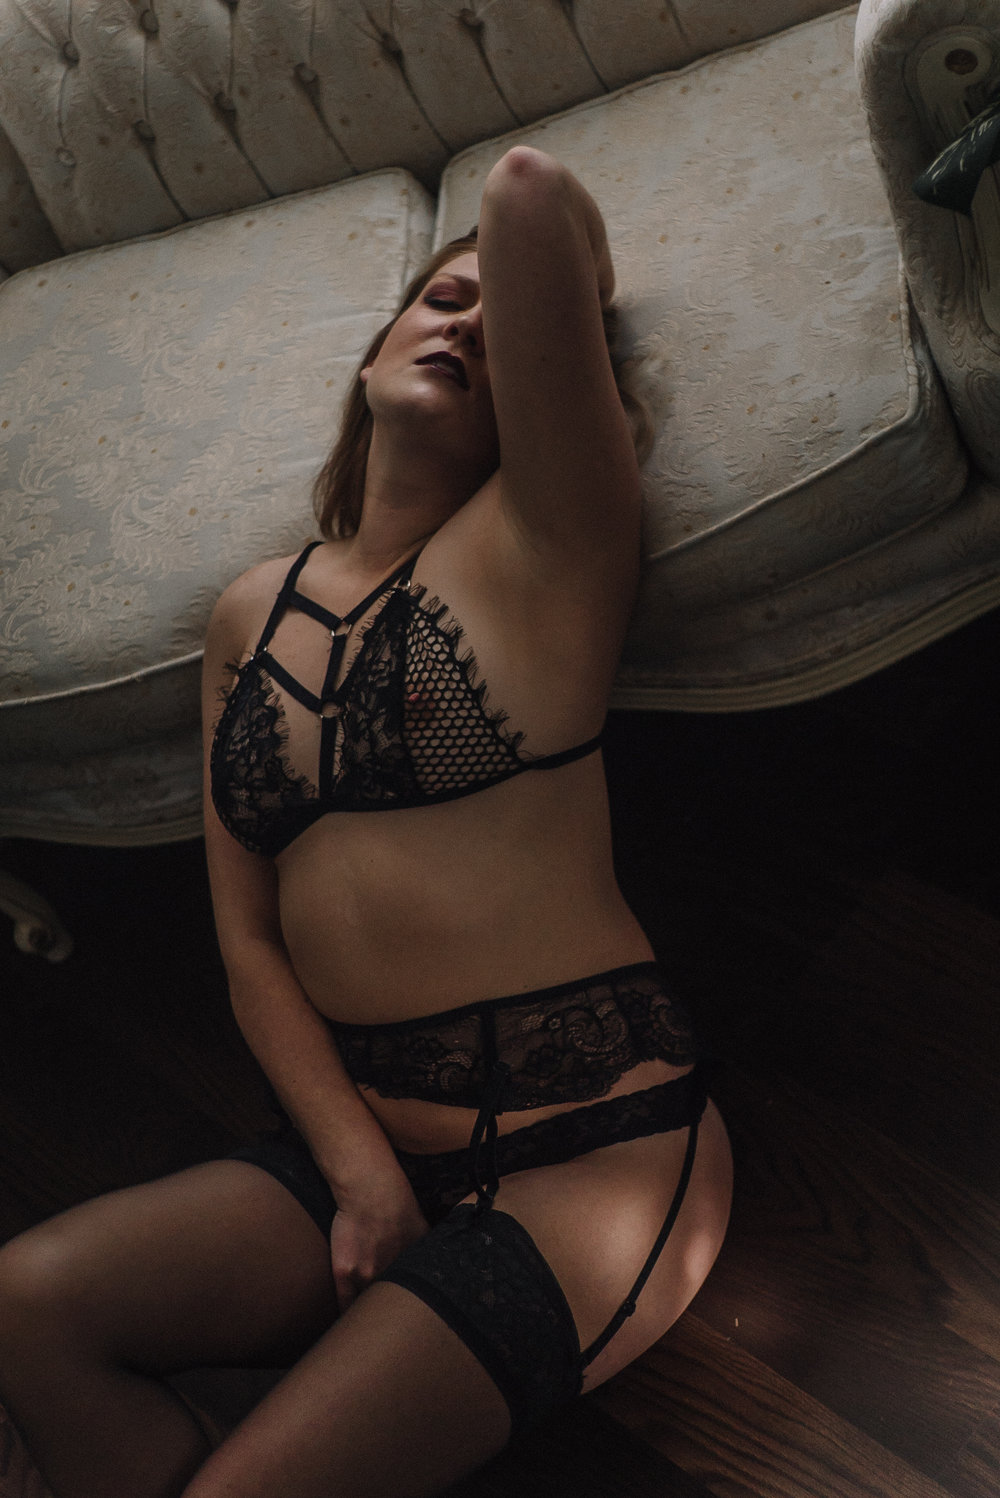 Sultry intimate portraiture for women north carolina boudoir studio photography